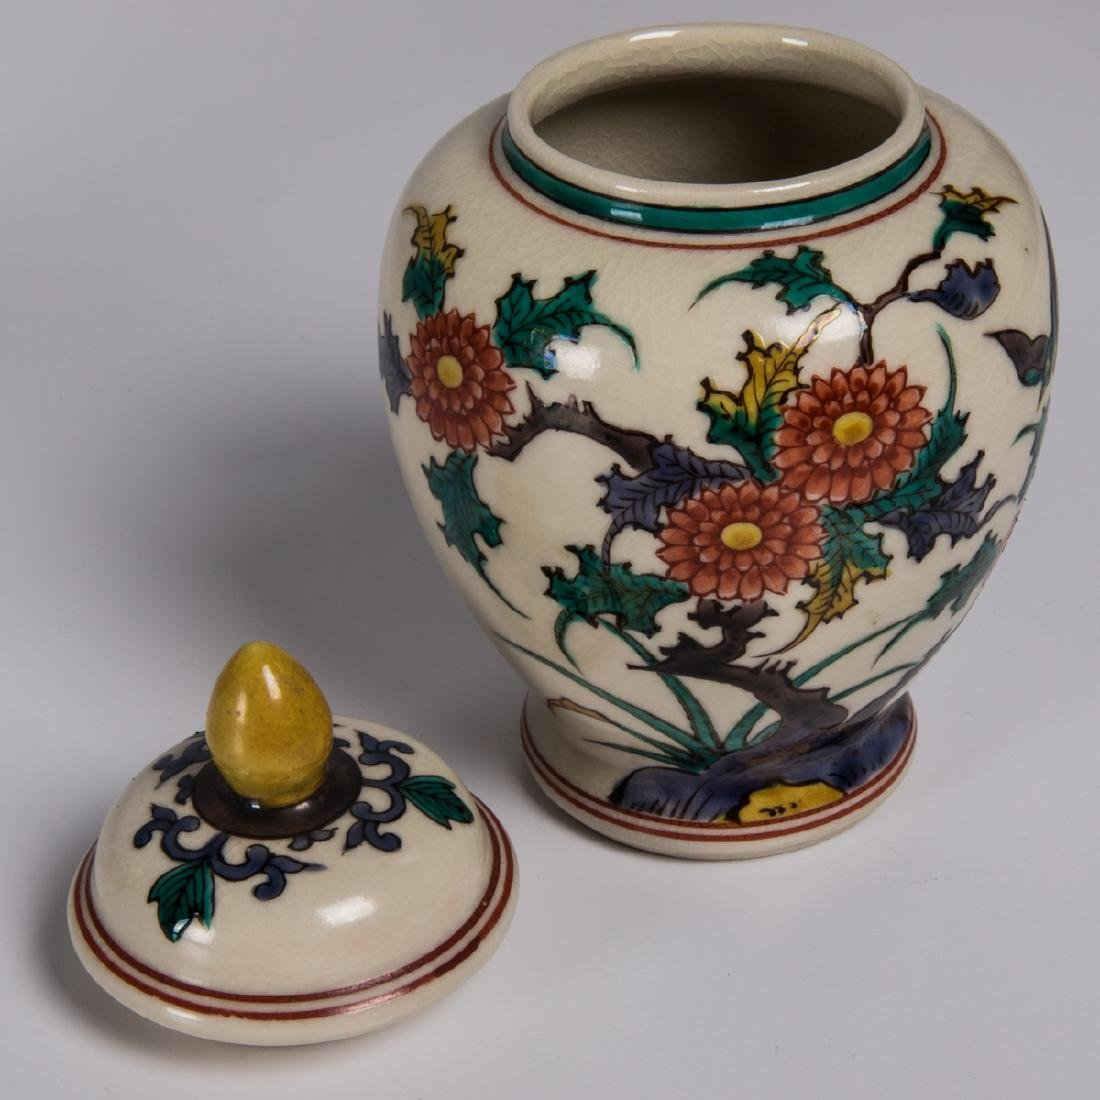 A Group of Fourteen Asian Porcelain and Ceramic Serving - 8